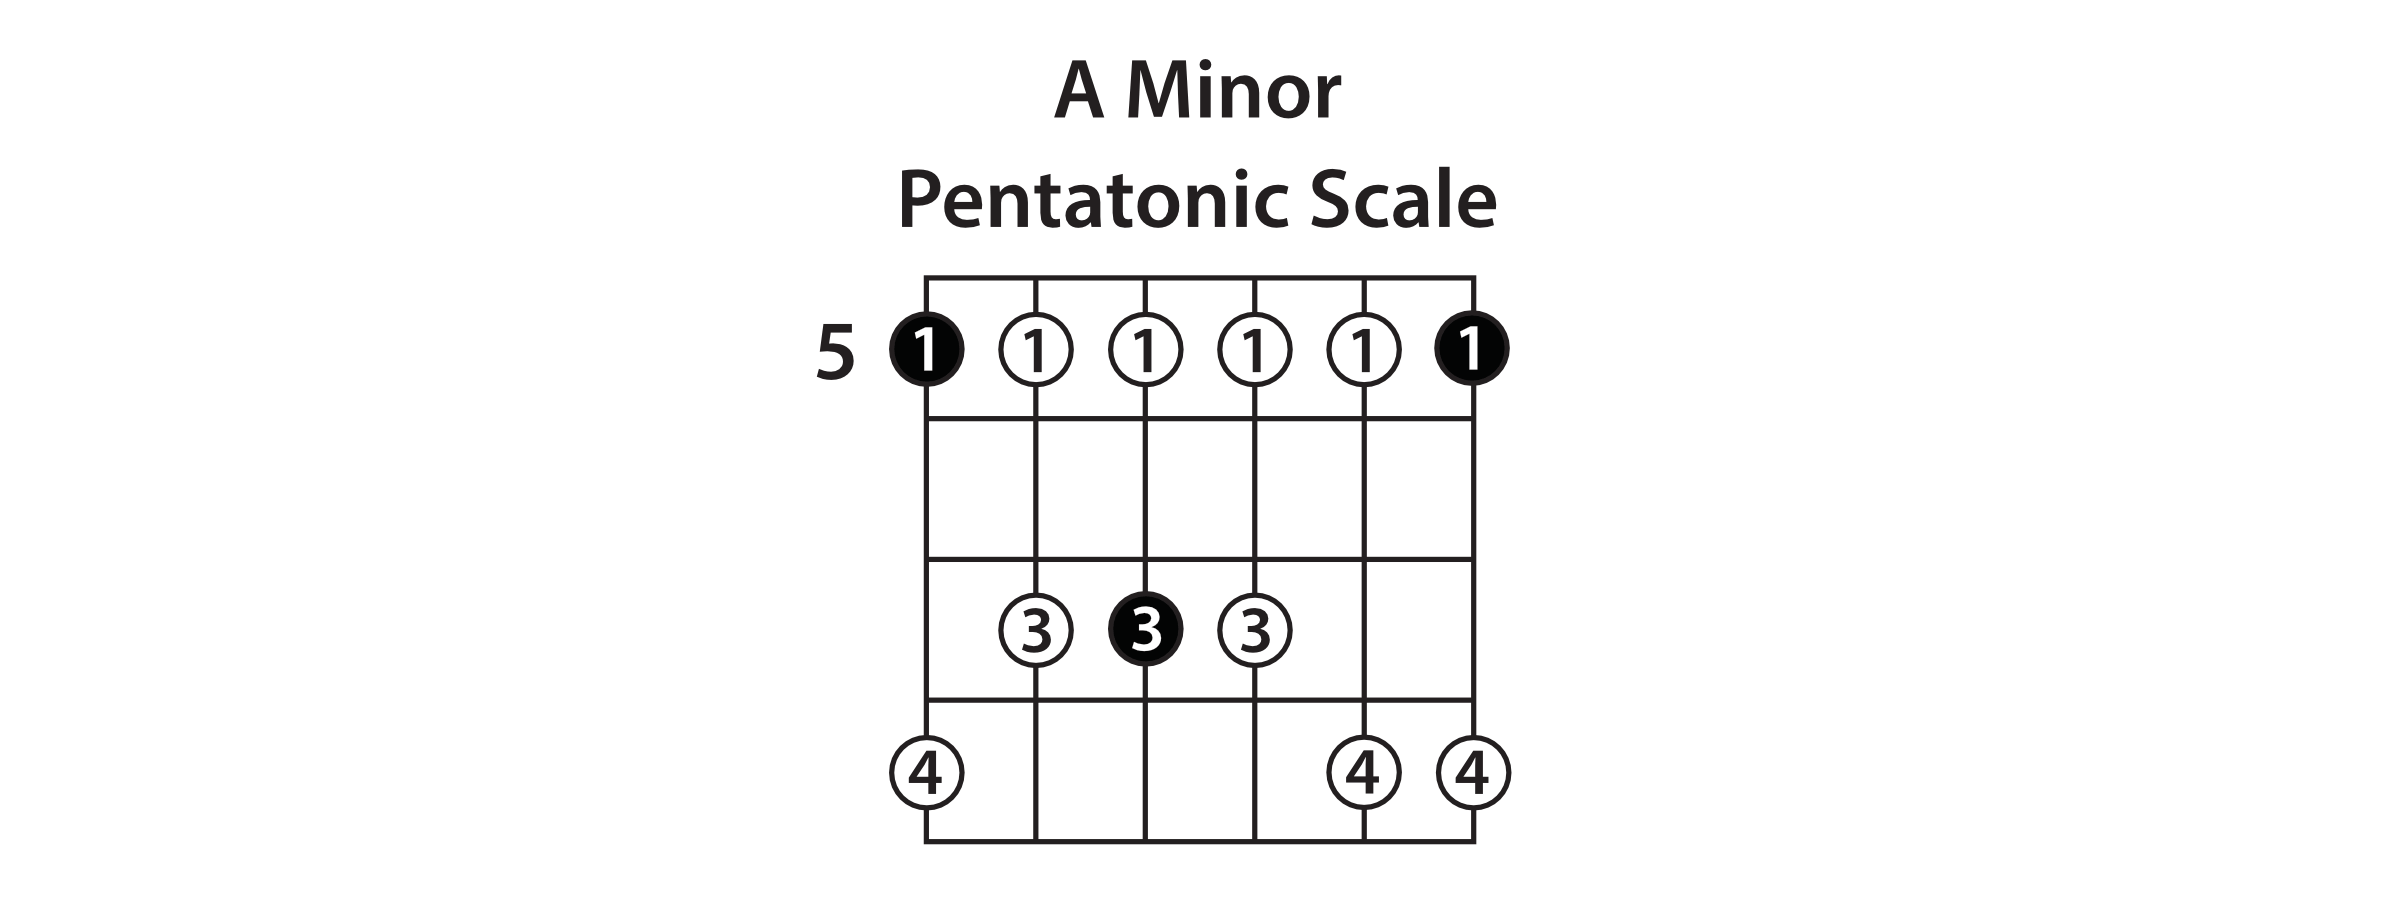 how to play a minor pentatonic scale on guitar